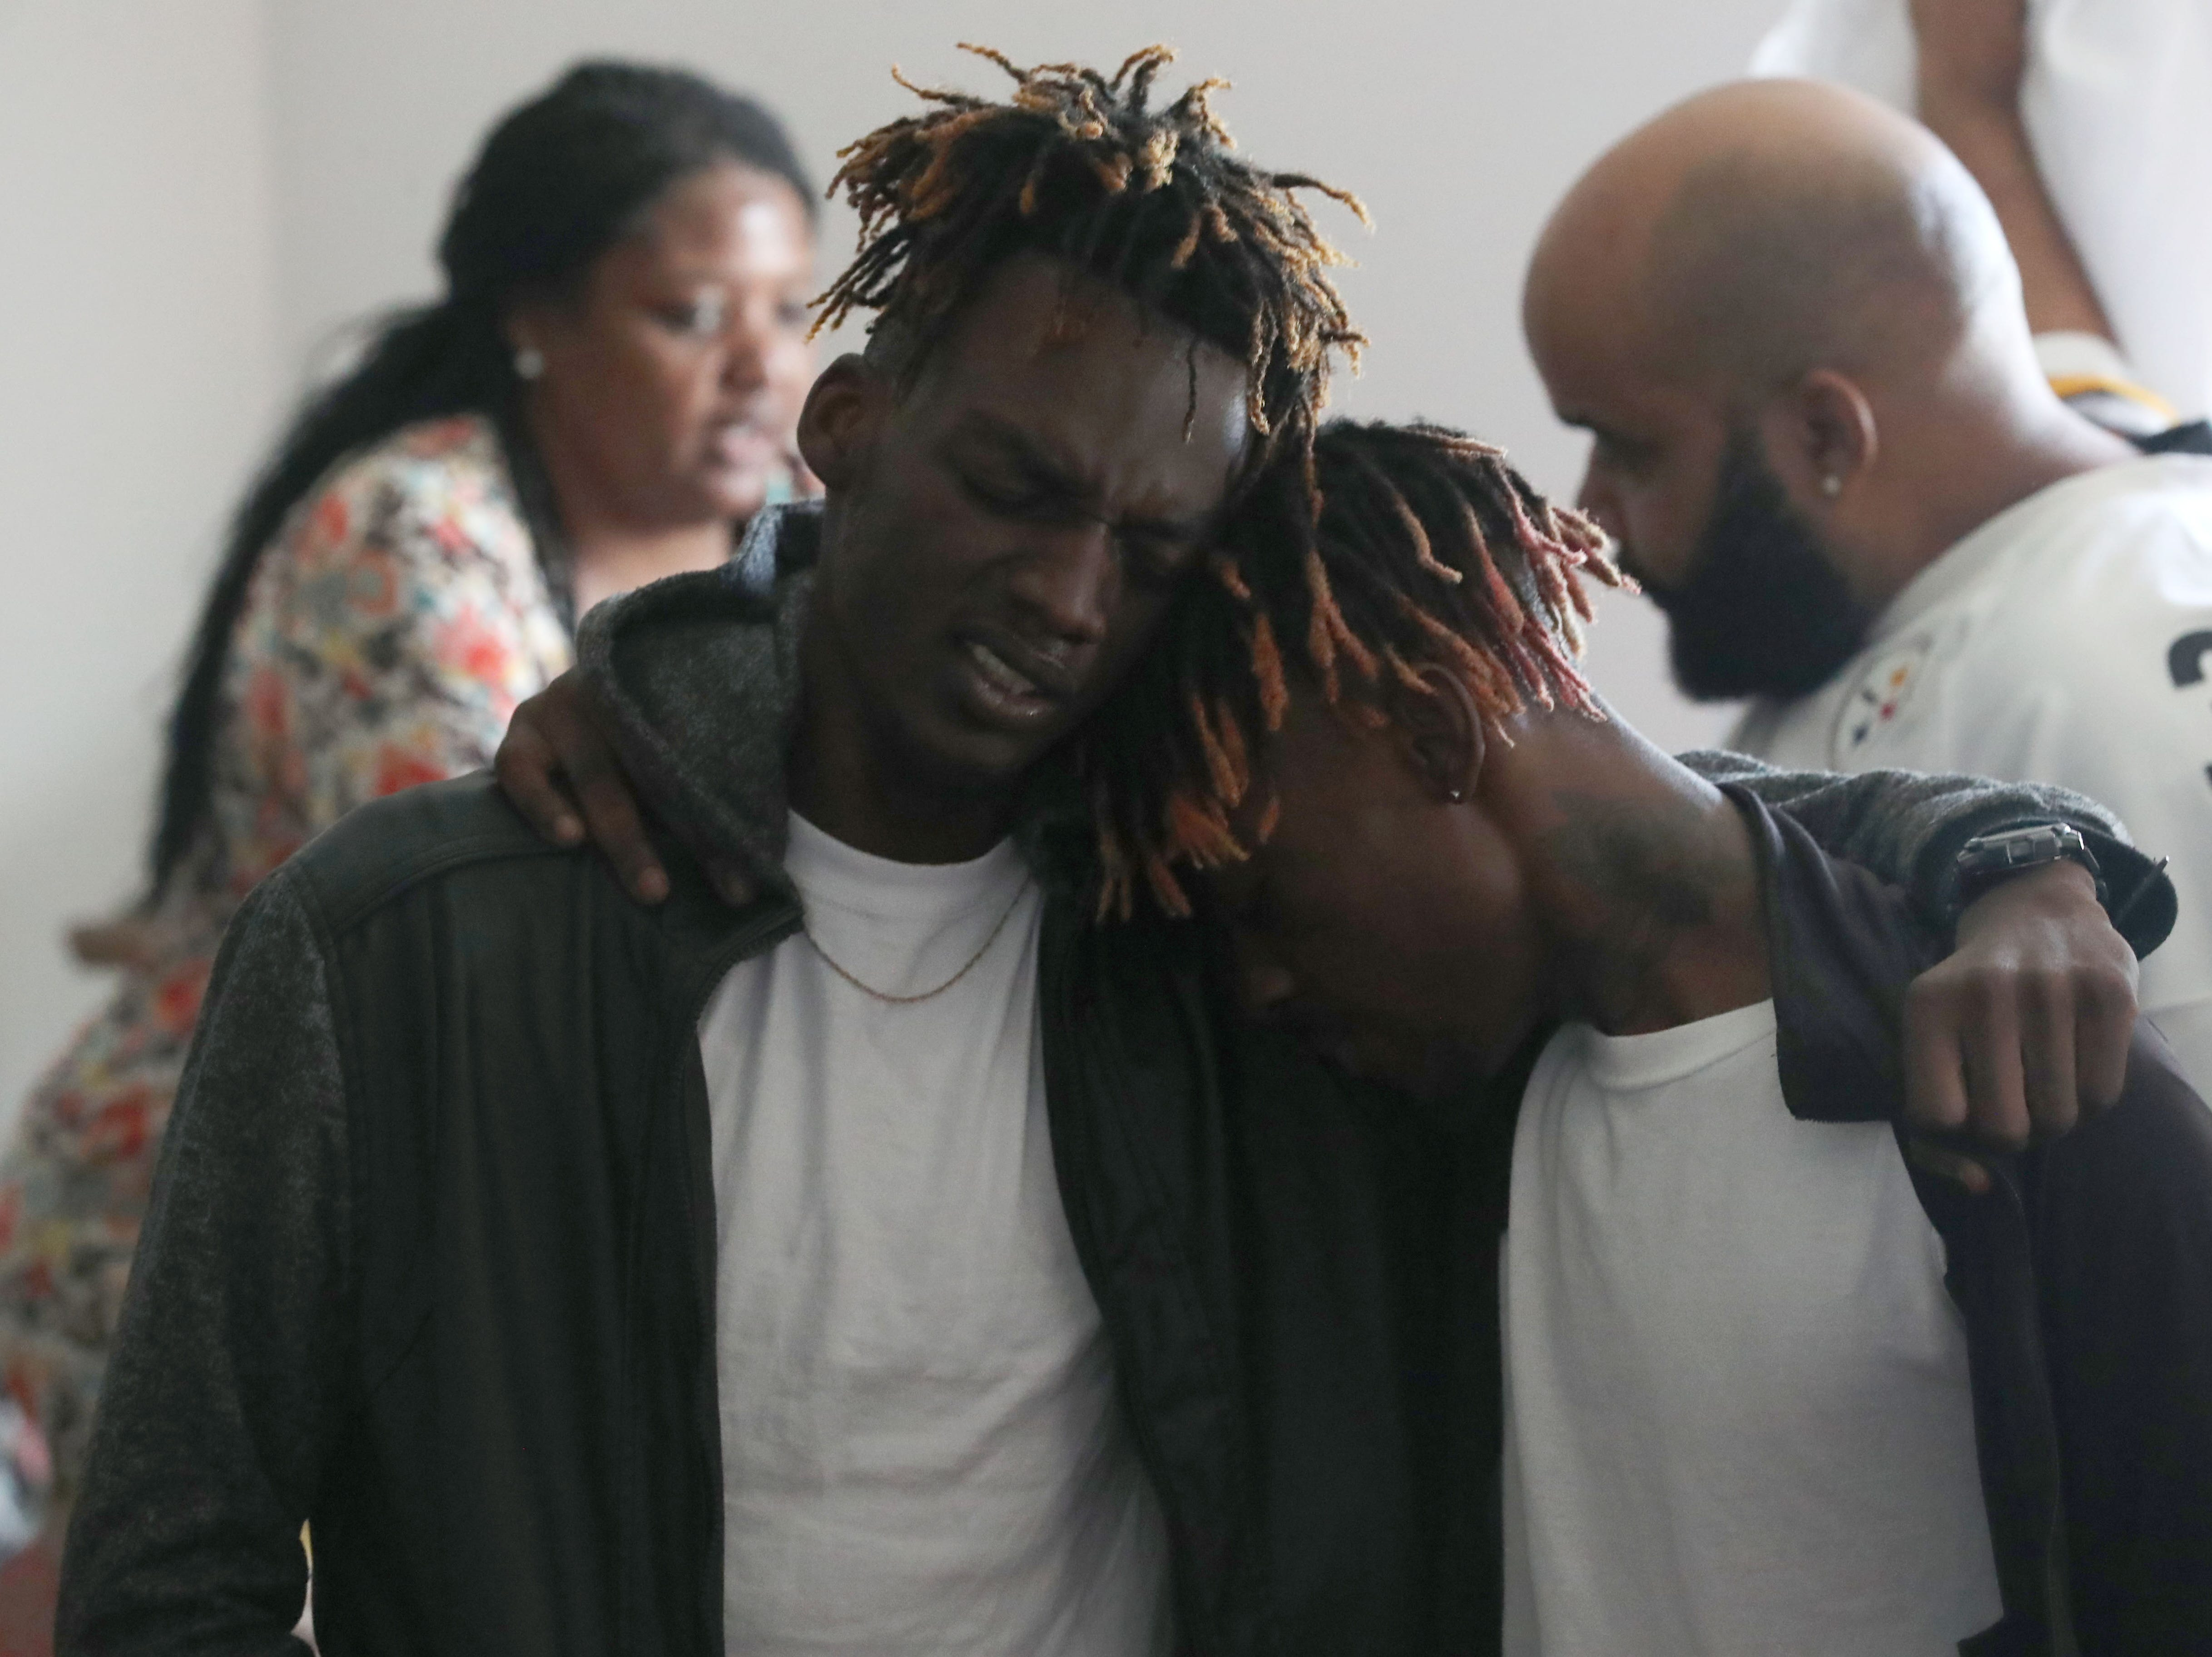 Tyrone Grant, 23, left, and his brother Tyran Grant, 21, both sons of  Demashell Bass, a woman who could not receive medical attention and died during Hurricane Michael, lean on one another while Tyrone sings a hymnal during church service at the Dream, Vision, and Destiny (DVD) Ministry in Gretna, Fla., on Sunday Oct. 14, 2018. Emotions flowed throughout the sanctuary as the service progressed and church members mourn the loss of Bass.